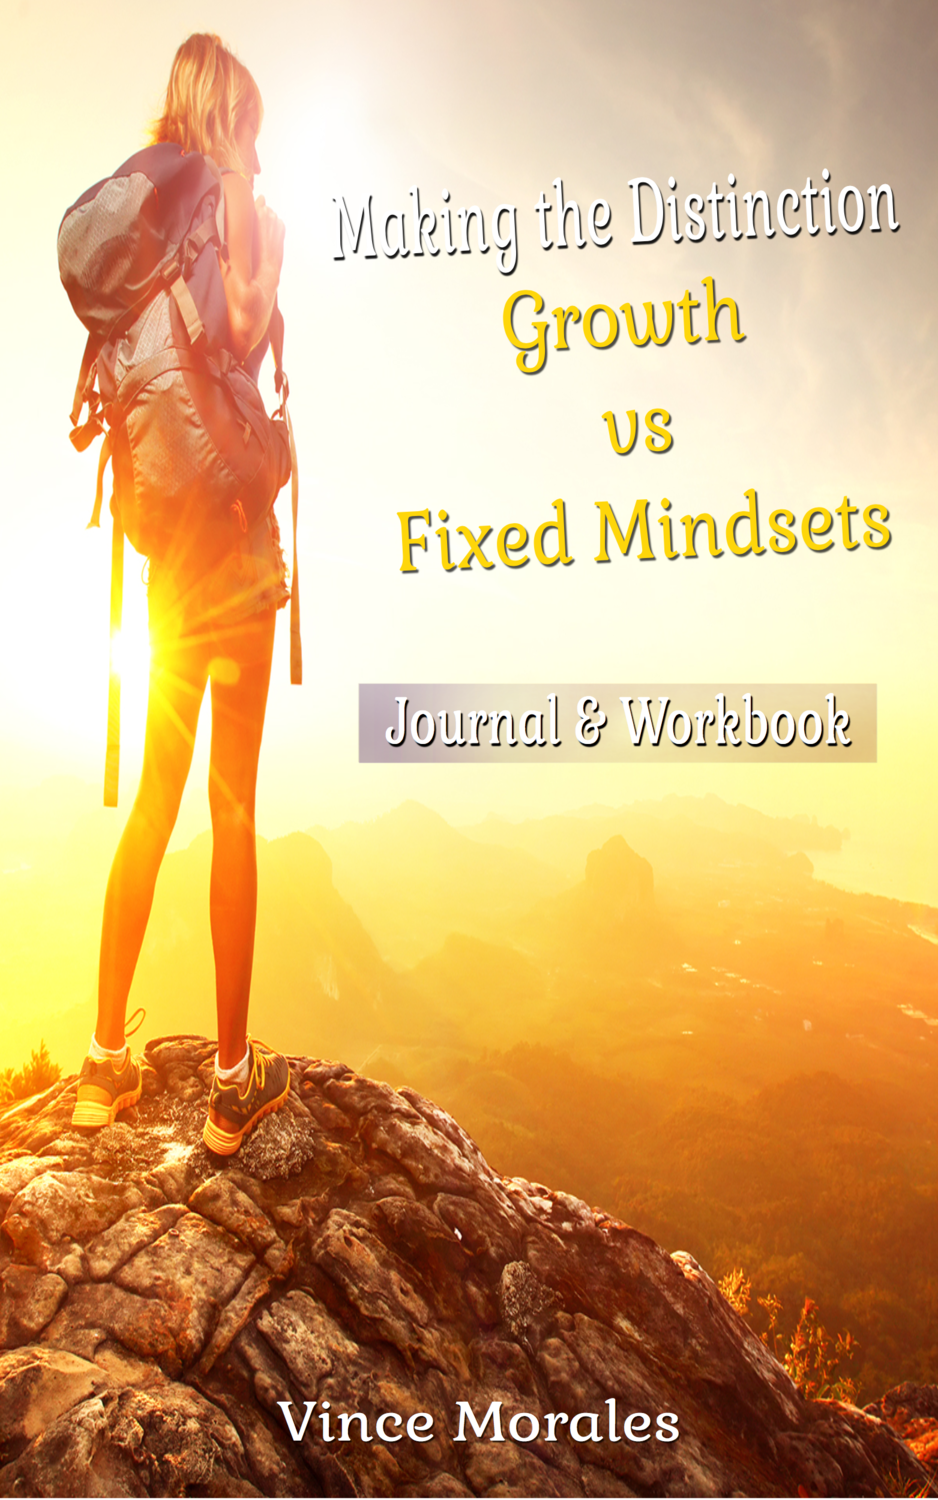 Making the Distinction: Growth vs Fixed Mindsets (Journal & Workbook) by Vince Morales